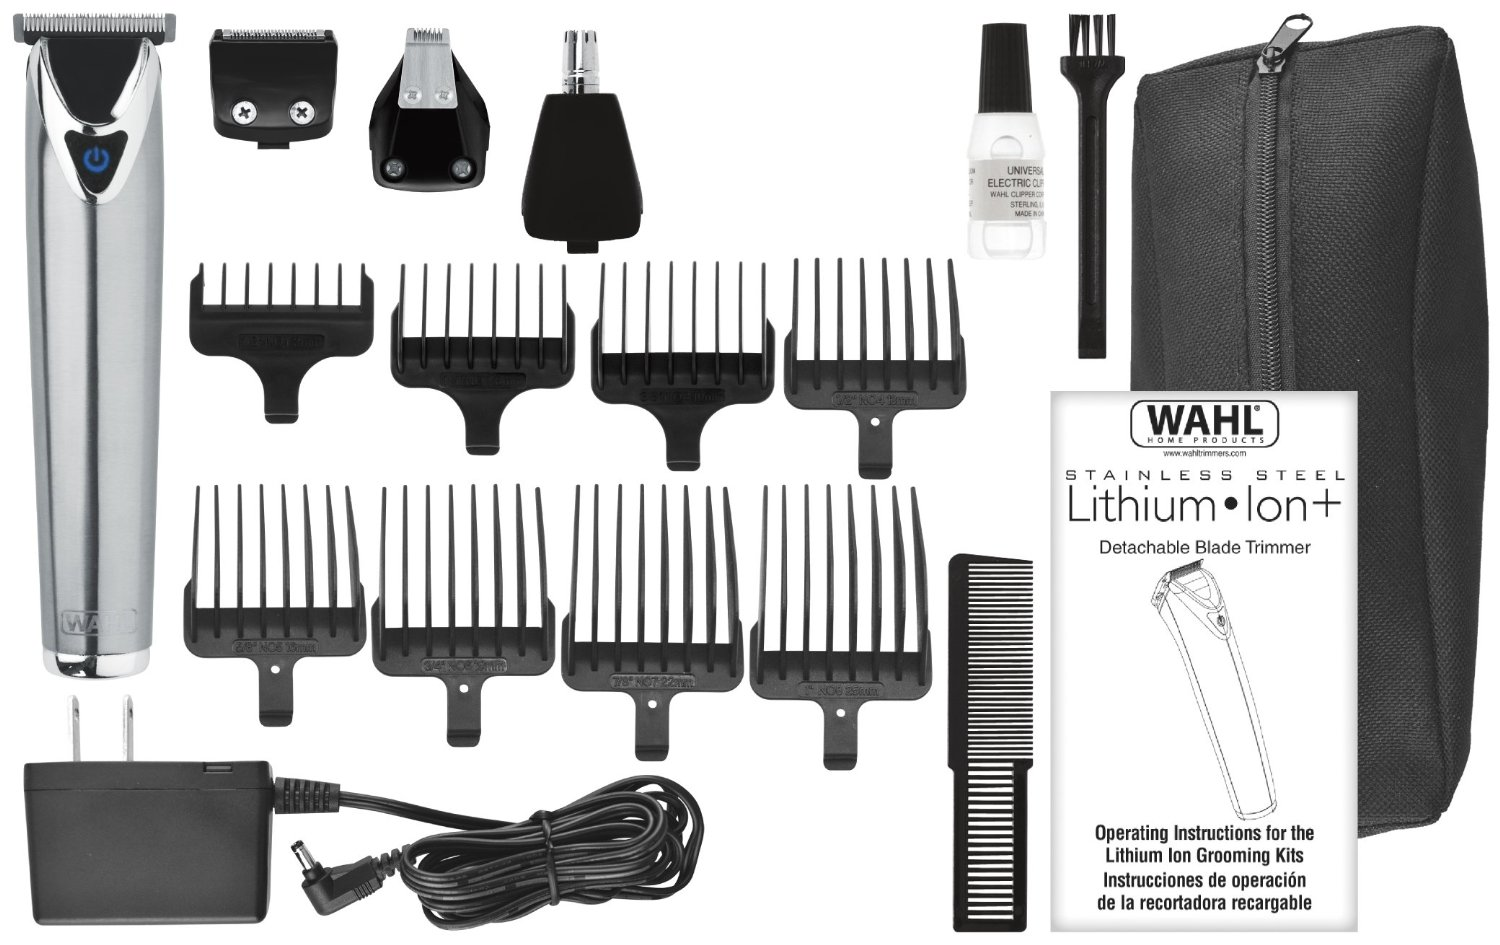 Wahl Stainless Steel Lithium Ion+ Mustache Trimmer